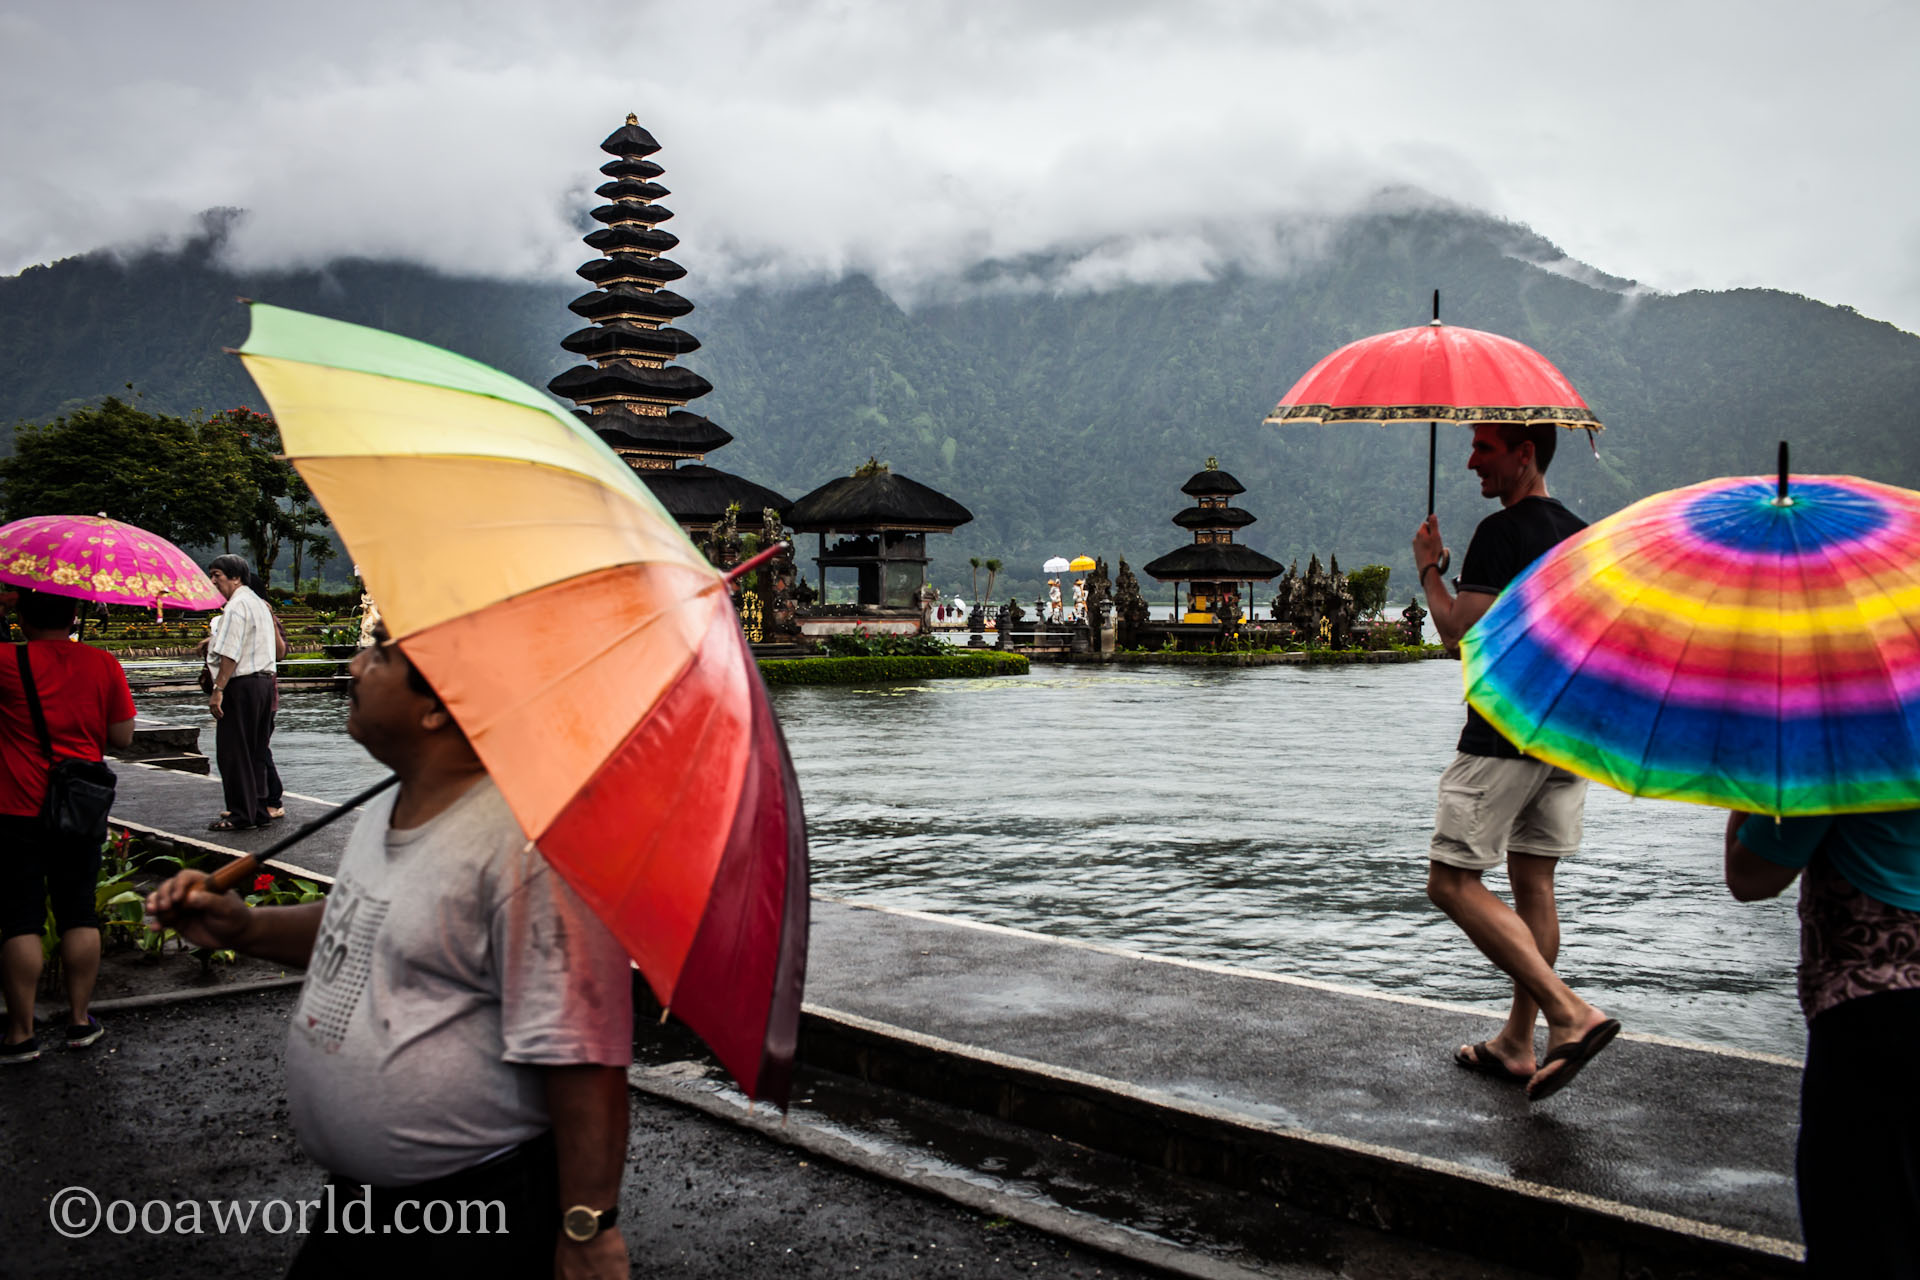 Pura Ulun Danu Bratan Color Umbrellas photo Ooaworld